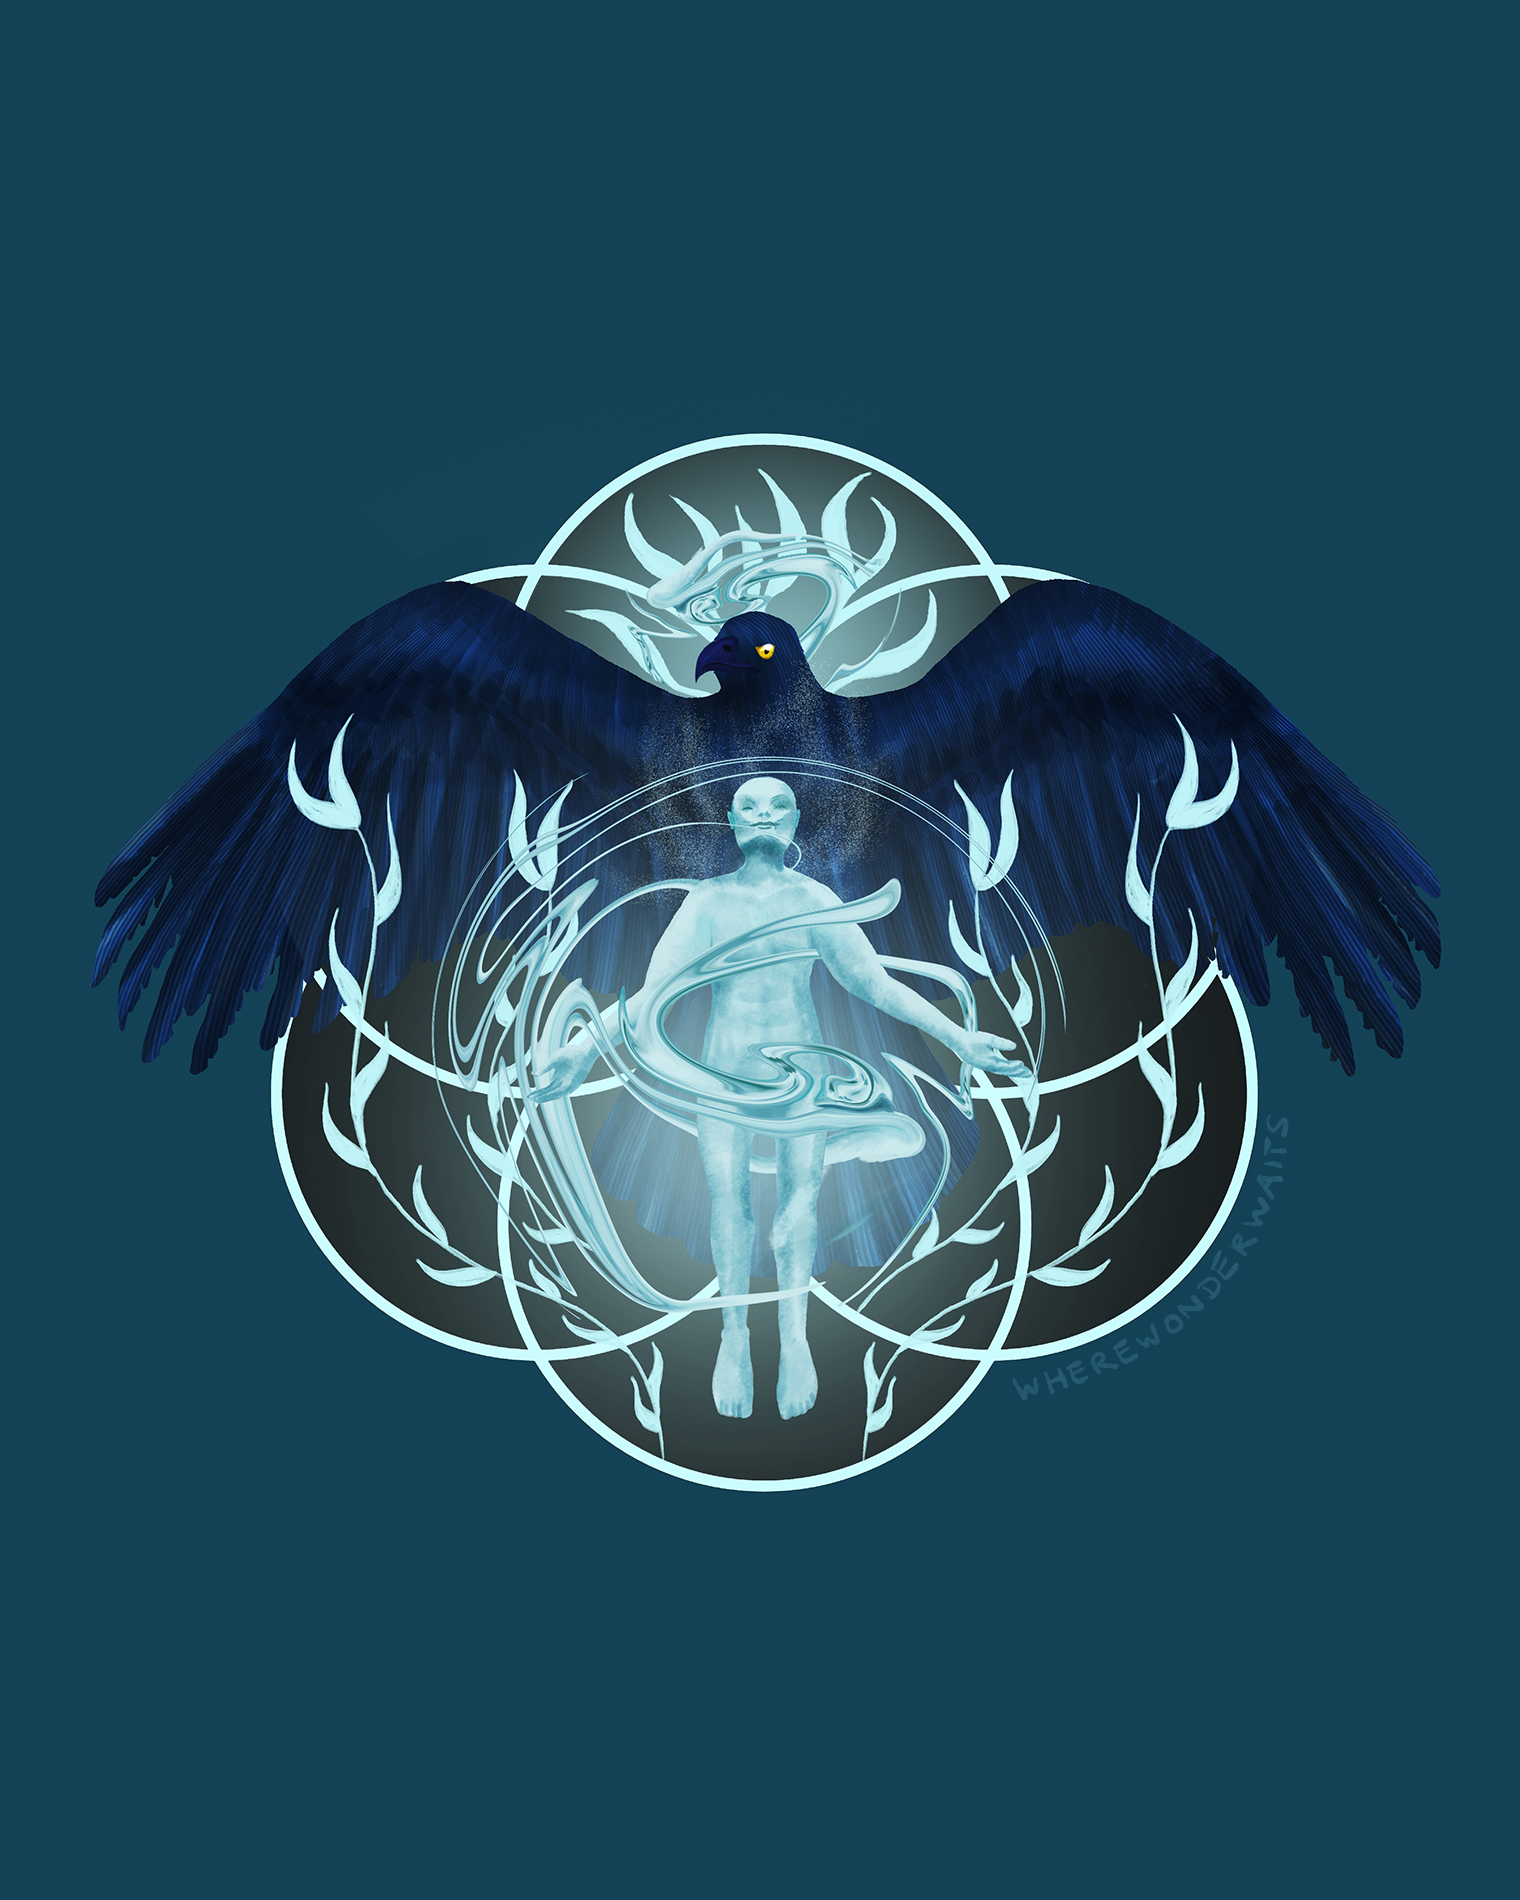 An illustration showing an eagle, symbol of the free mind, rising together with a human being. It symbolizes entering higher levels of consciousness.